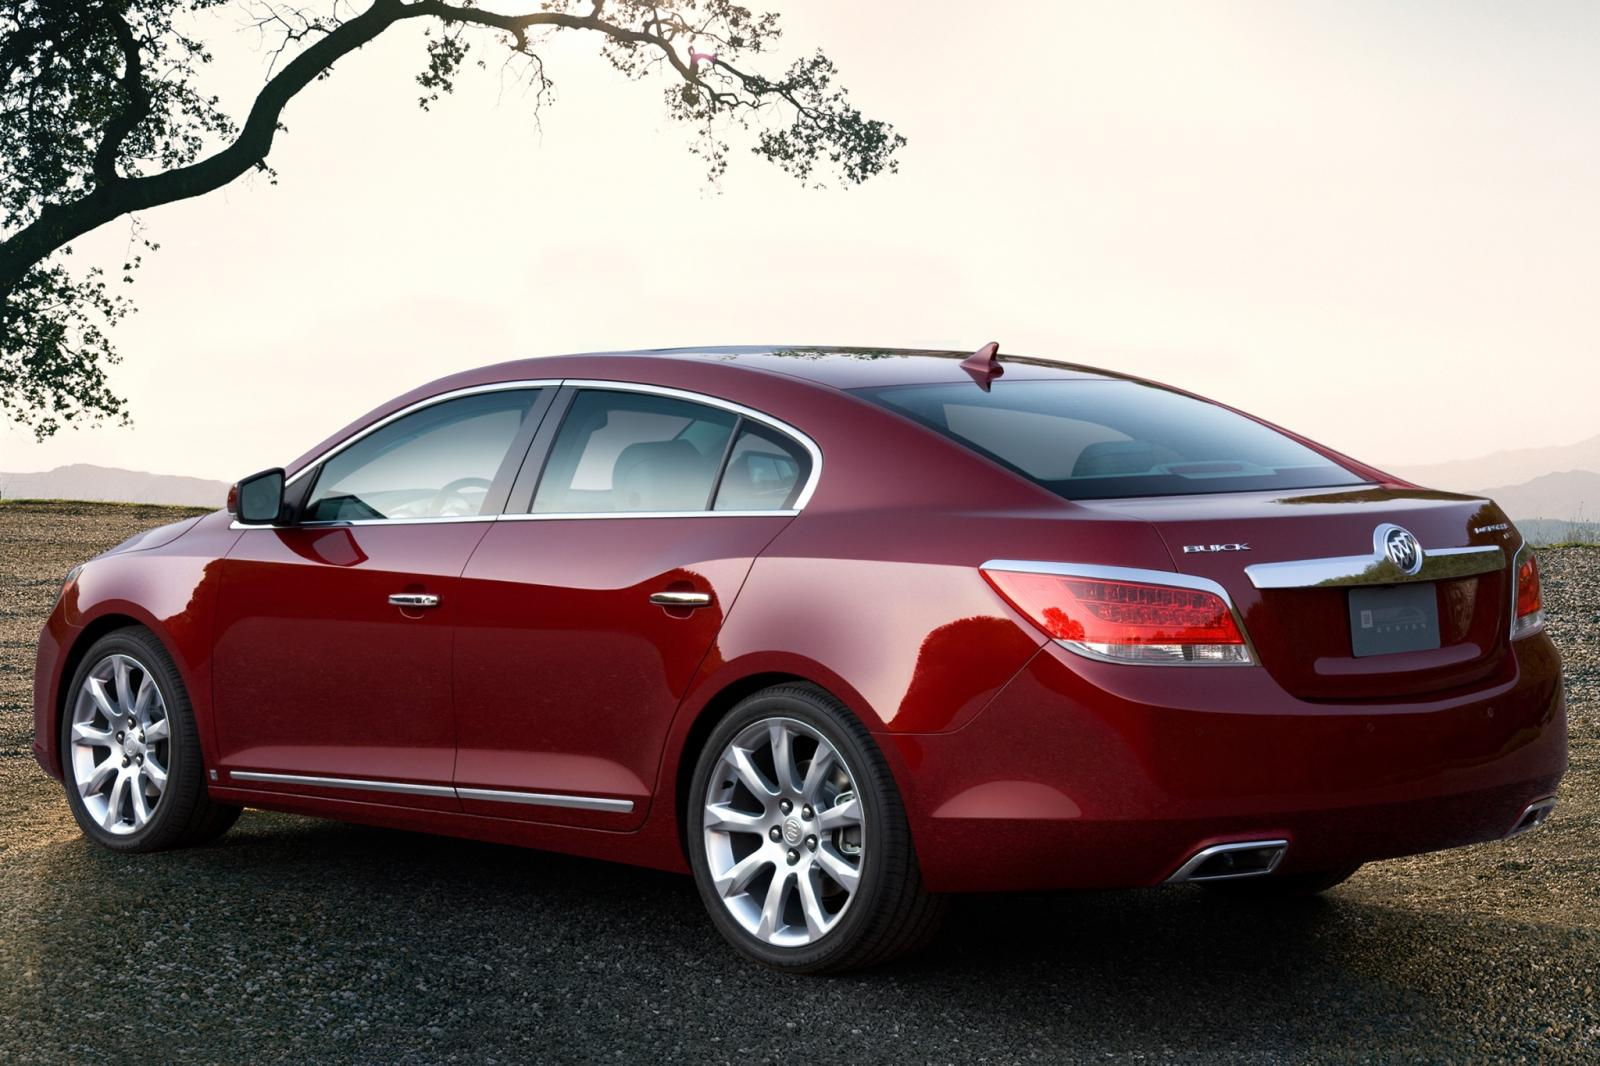 2010 buick lacrosse information and photos zombiedrive. Black Bedroom Furniture Sets. Home Design Ideas